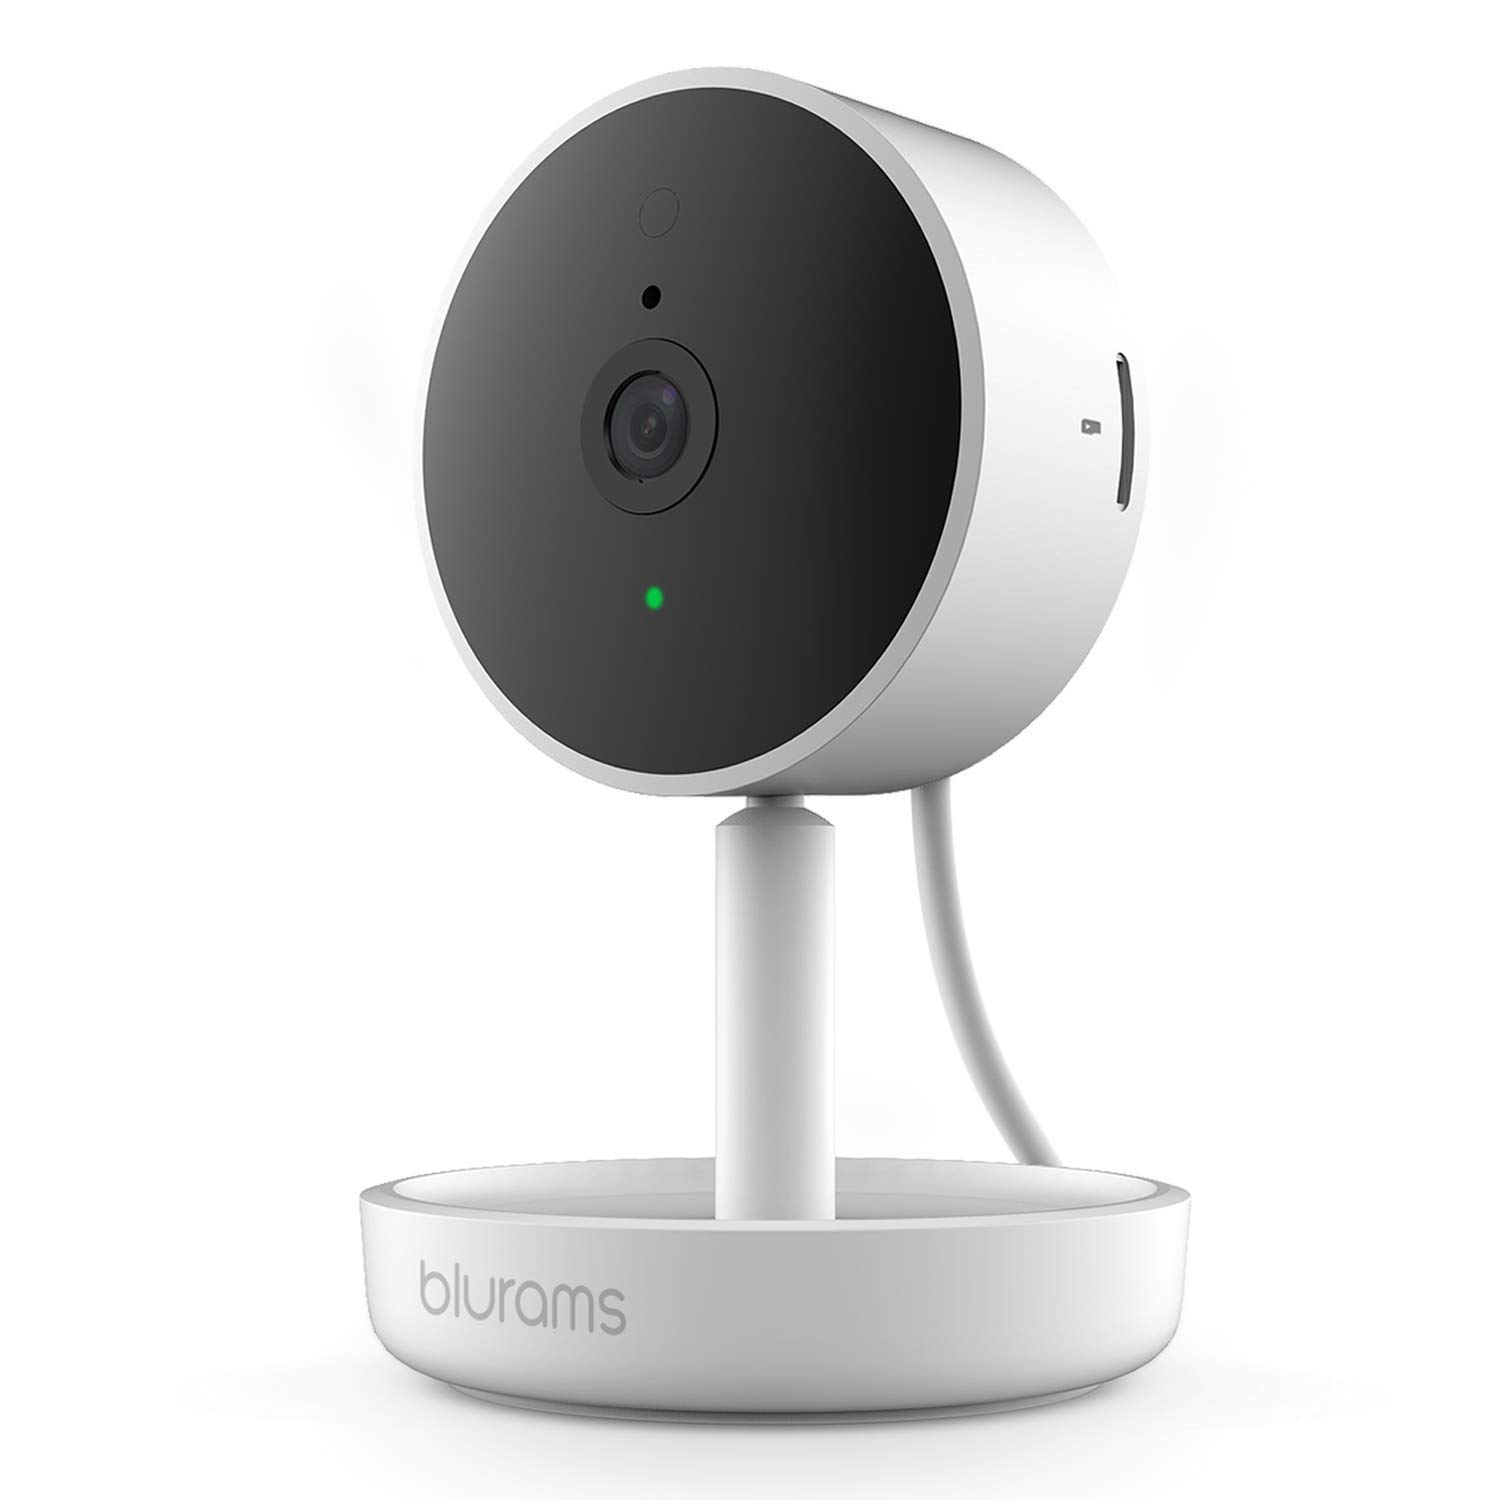 Camera for Home Security blurams 1080p Indoor Security Camera w/ Facial Recognition